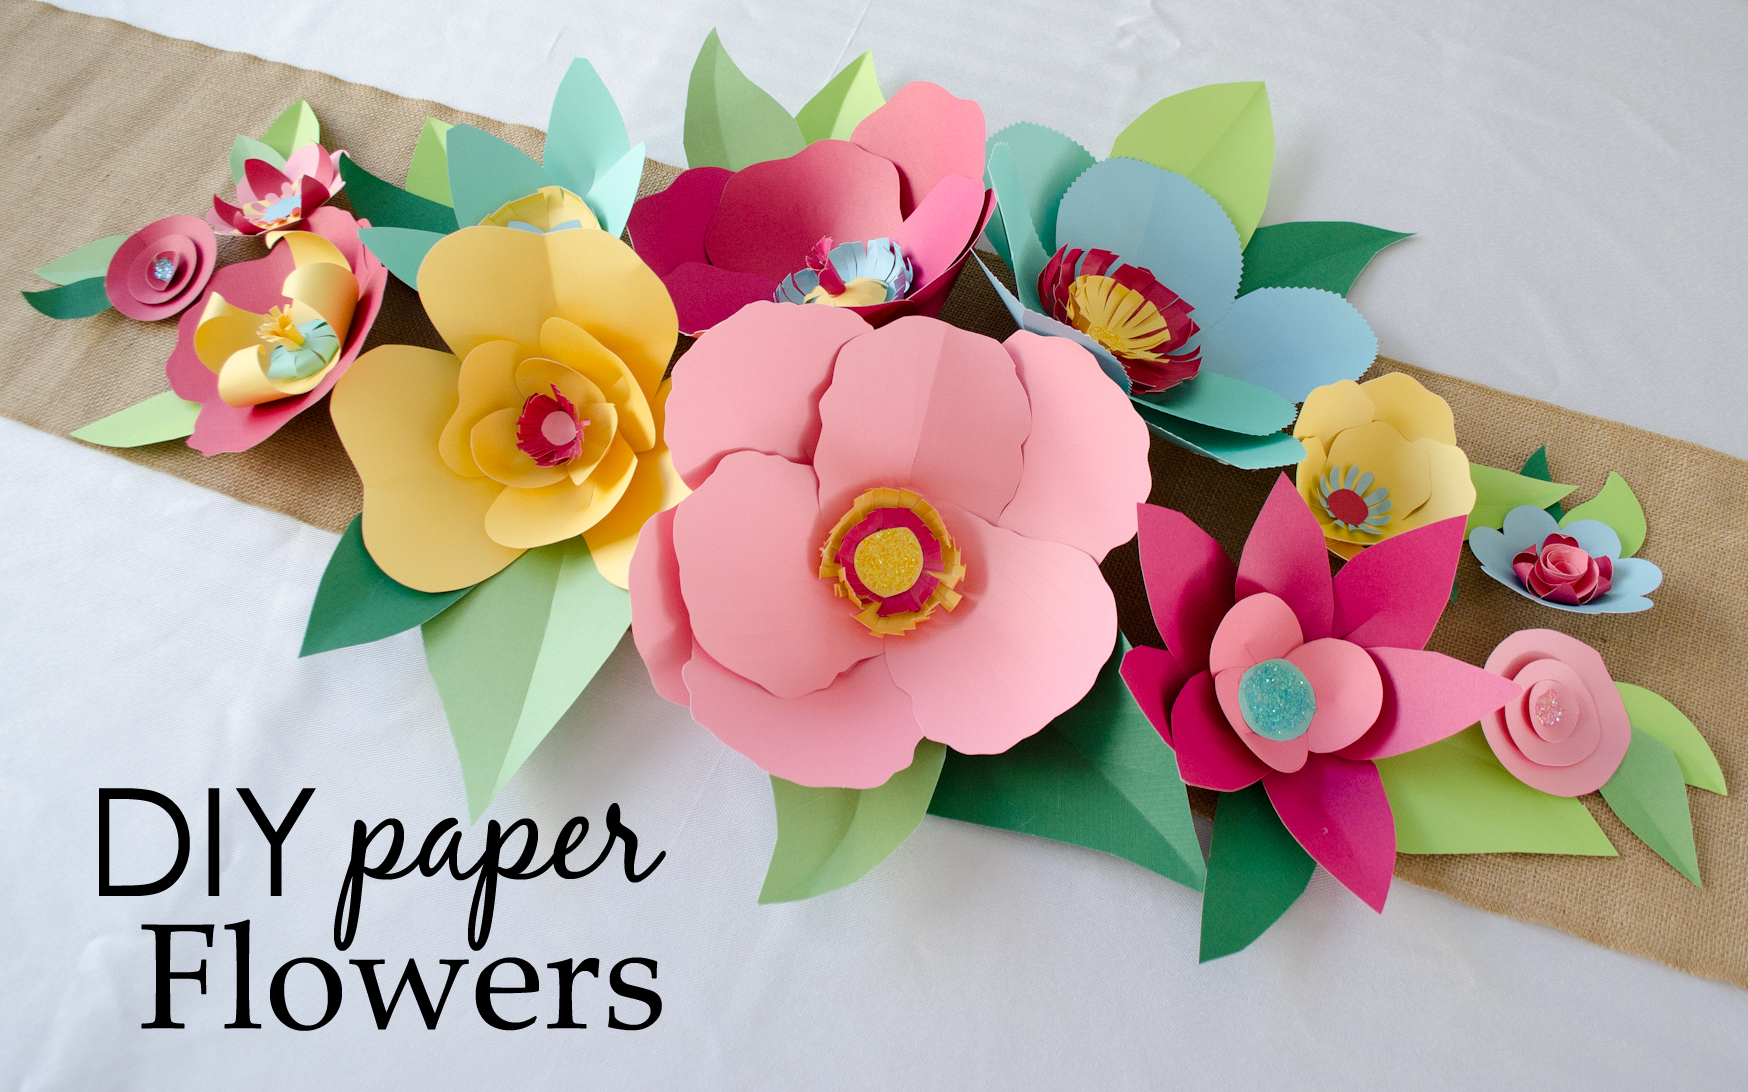 Diy hand cut paper flowers project nursery diy paper flowers mightylinksfo Gallery